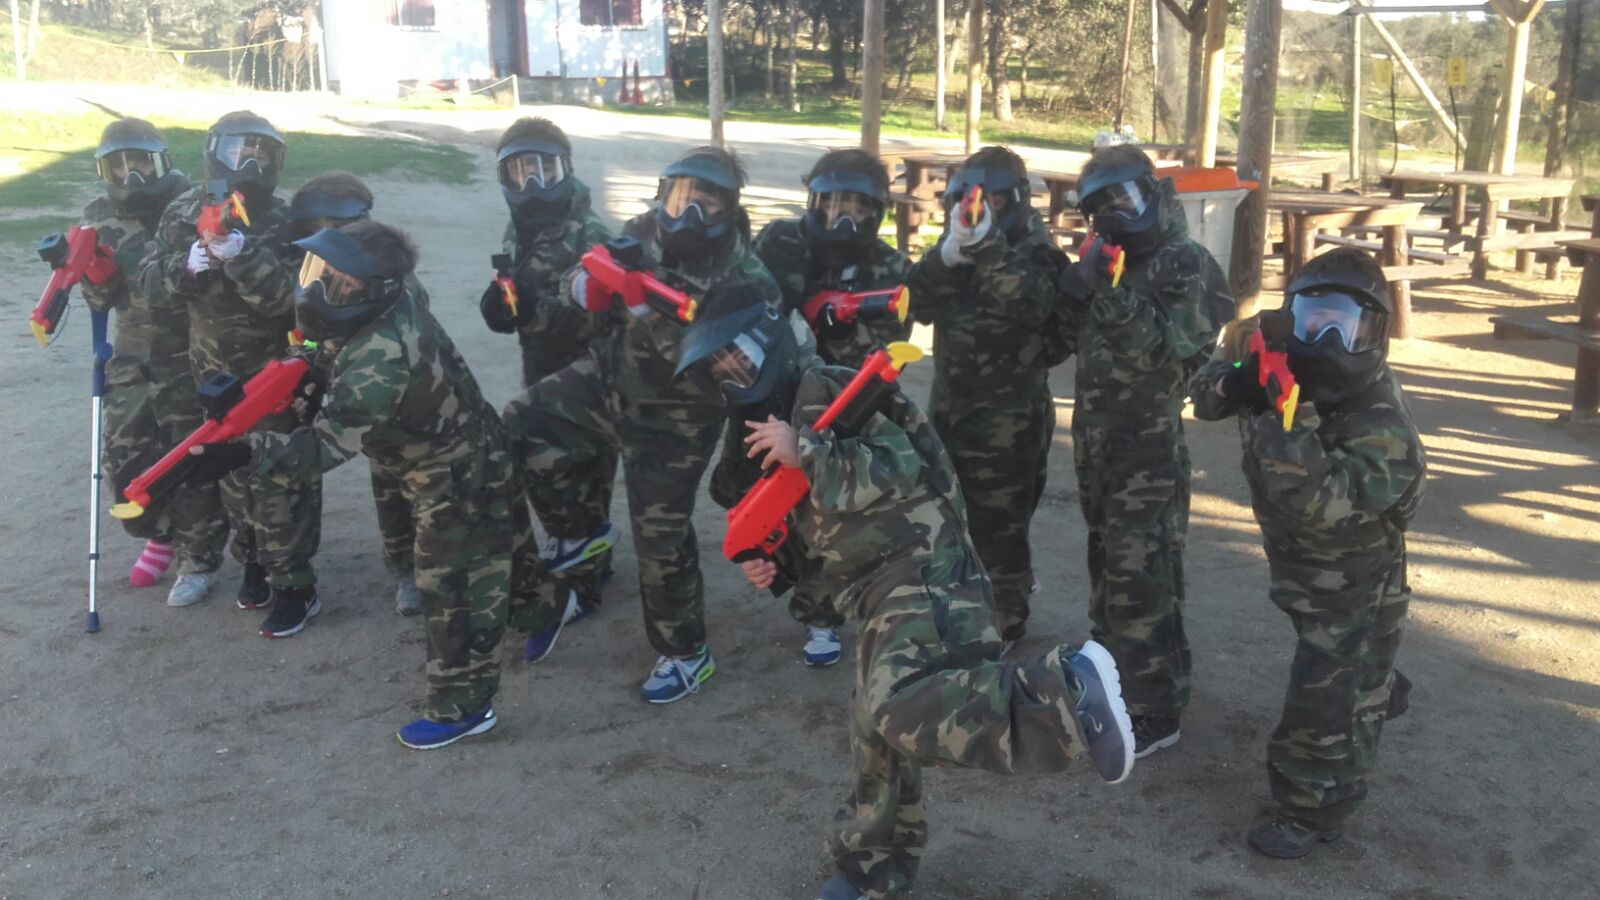 Tu mejor oferta jugar paintball infantil en madrid megacampo for Megacampo paintball madrid oficinas madrid